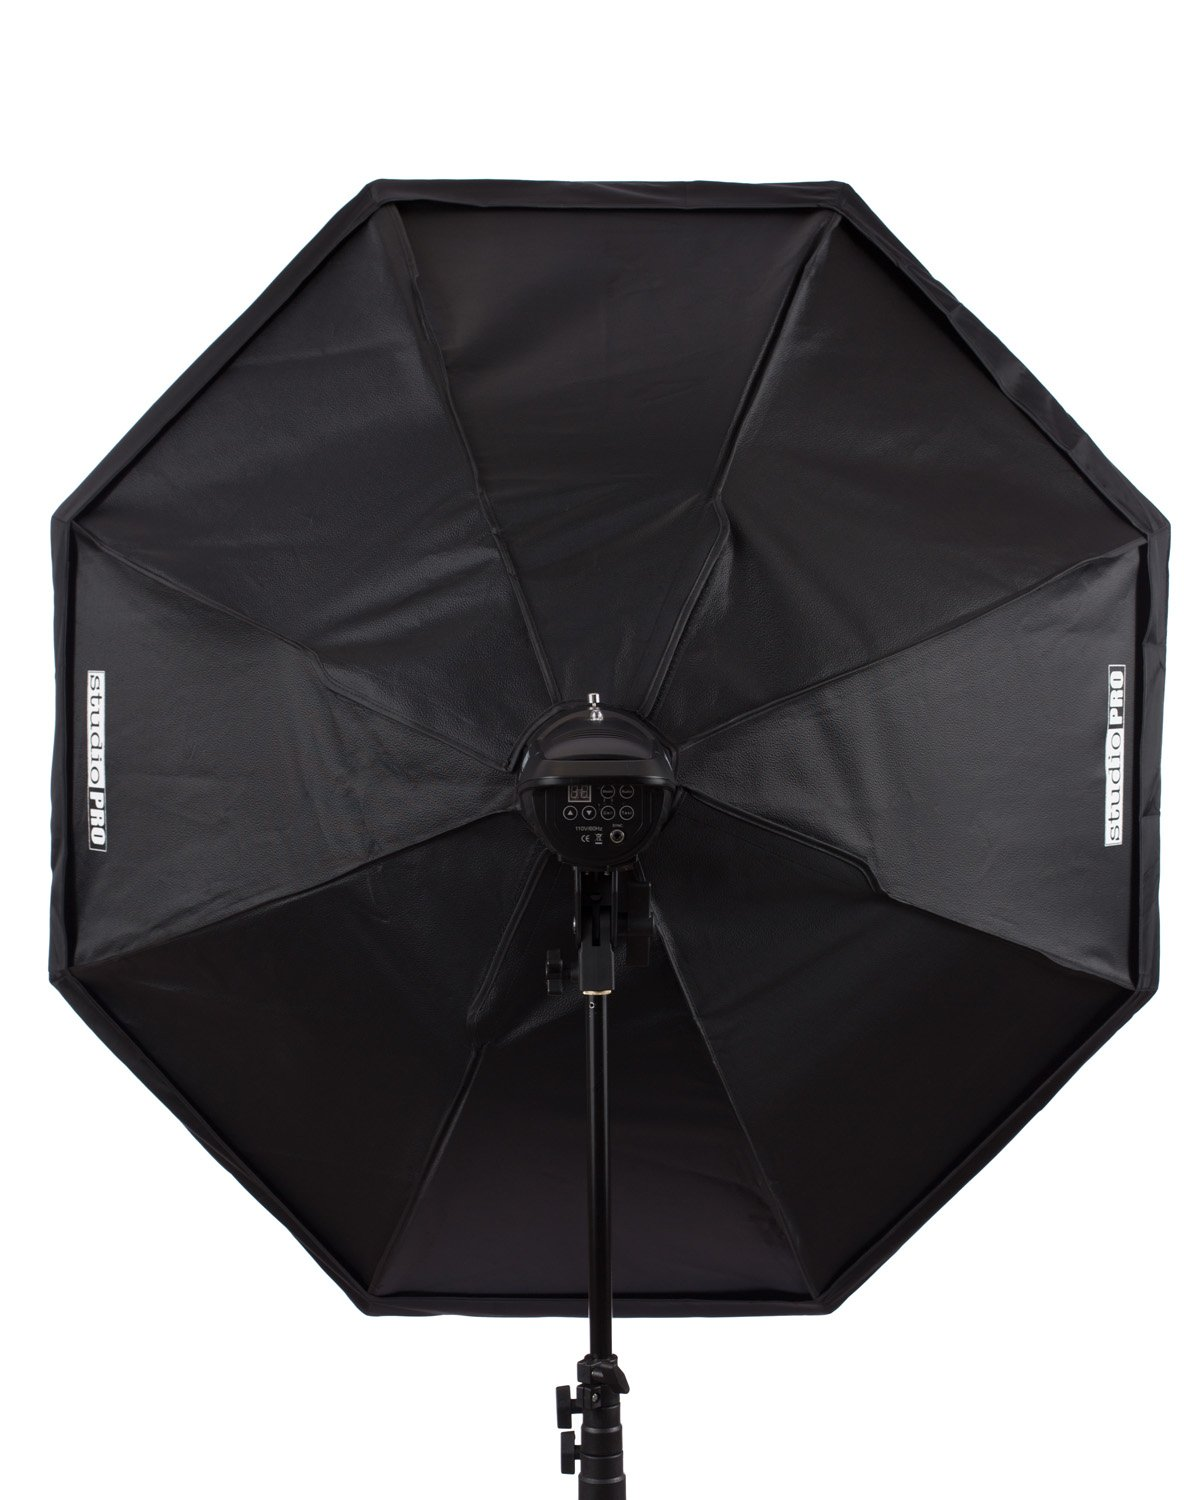 StudioPRO 68 Inch Octagon Softbox Photography Light Diffuser & Modifier with Bowens Speedring Mount For Monolight Photo Studio Strobe Lighting by Fovitec (Image #6)